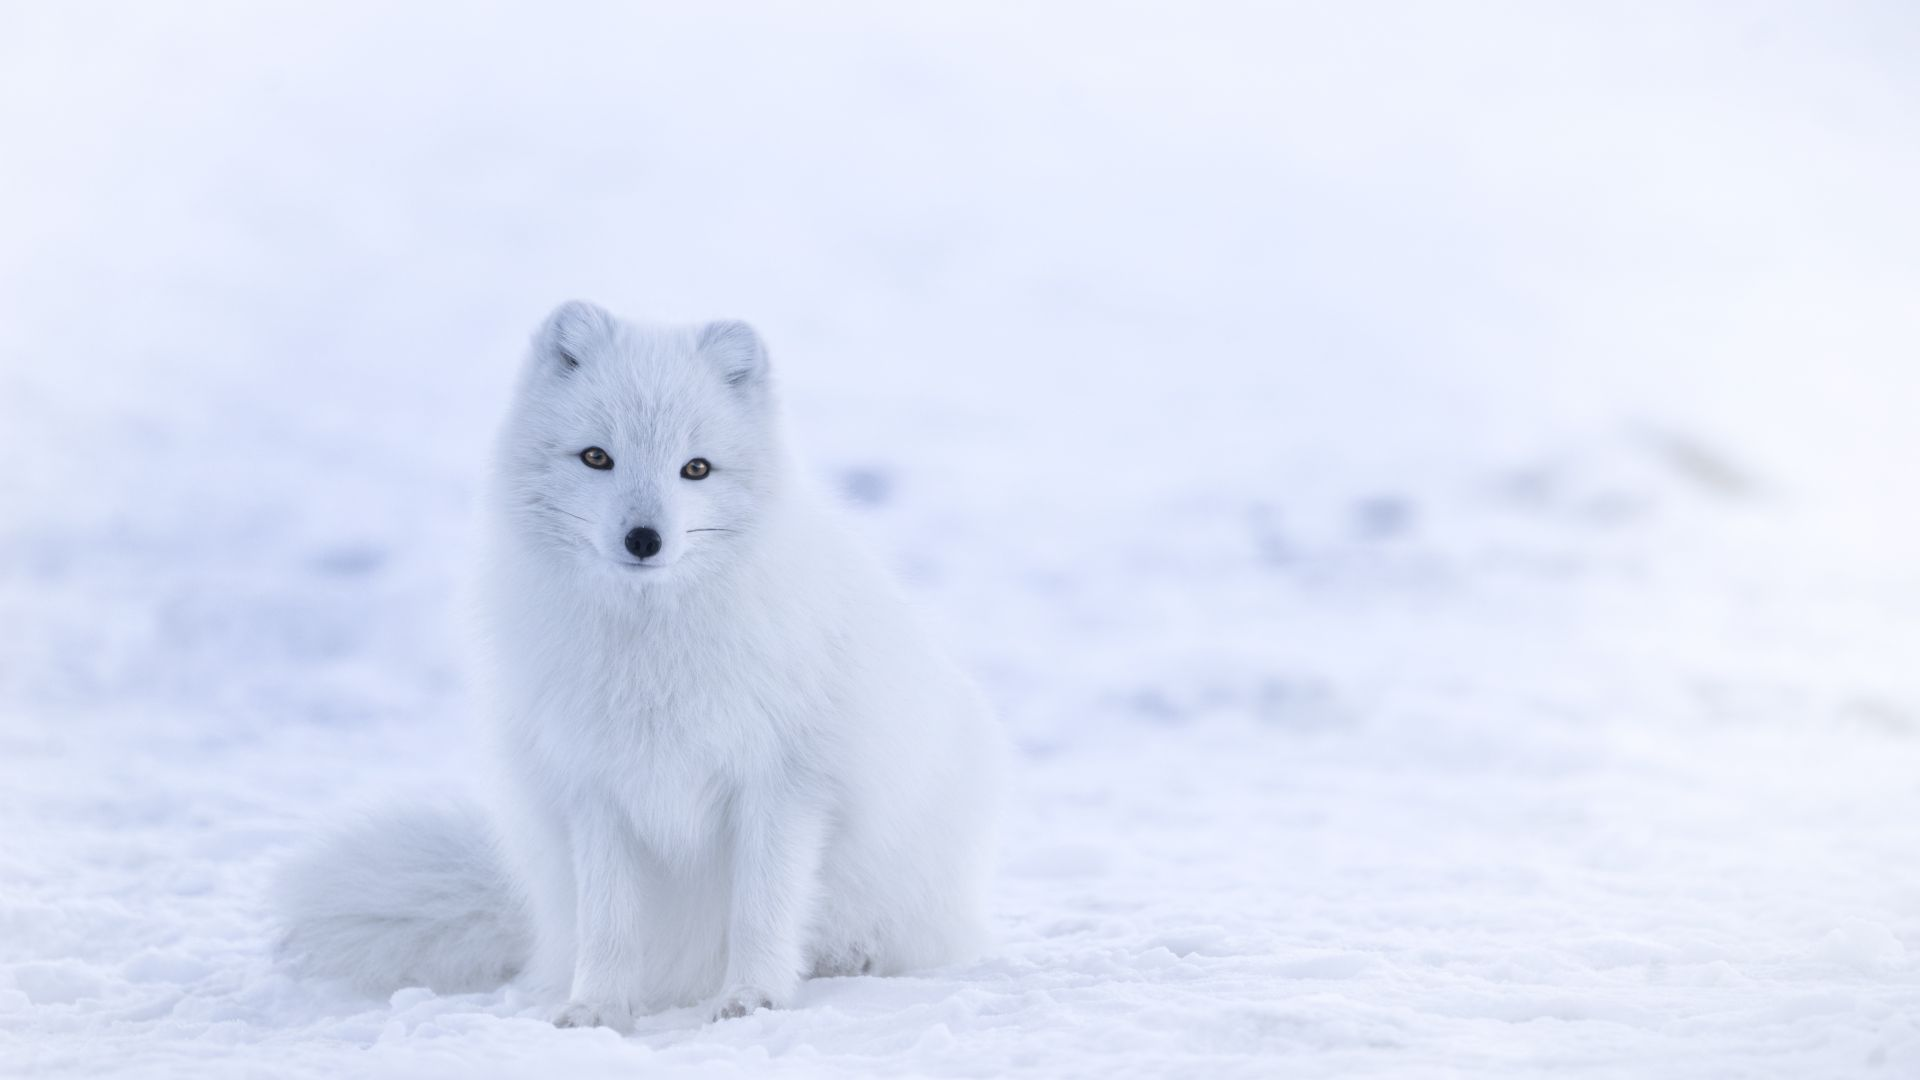 wallpaper arctic fox, cute animals, winter, snow, white, 8k, animals